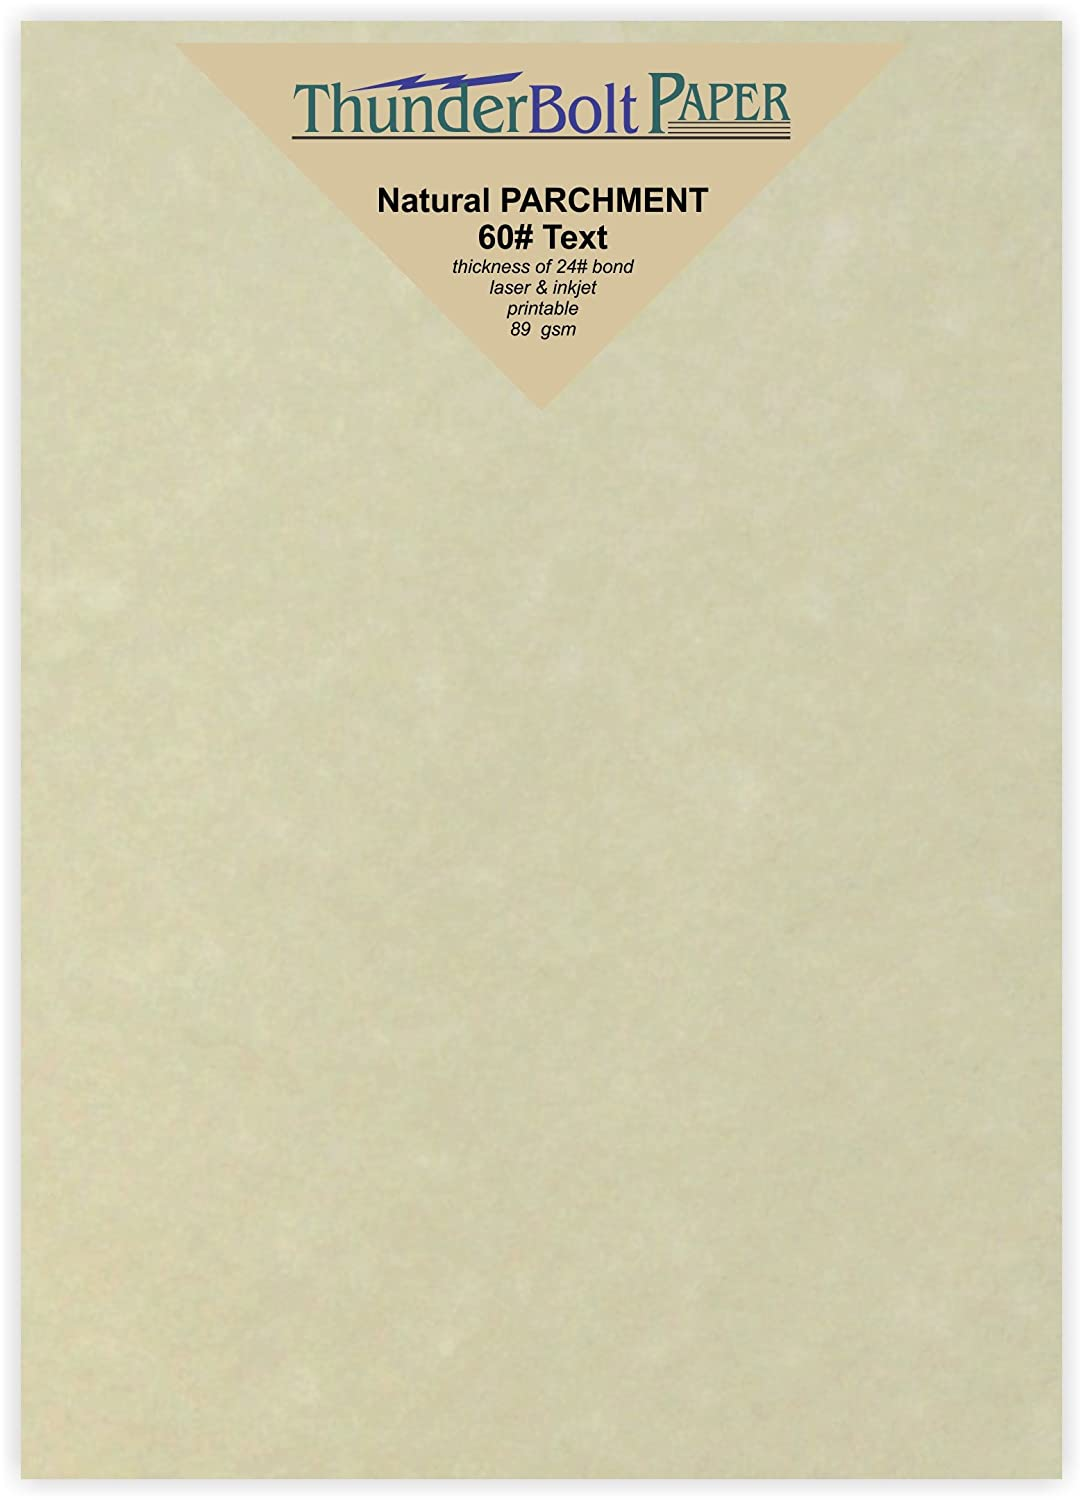 60 Pound is Not Card Weight 200 Light Brown Parchment 60# Text Vintage Colored Old Parchment Semblance Statement Size Paper Sheets =24# Bond 5.5 X 8.5 Inches Half Letter